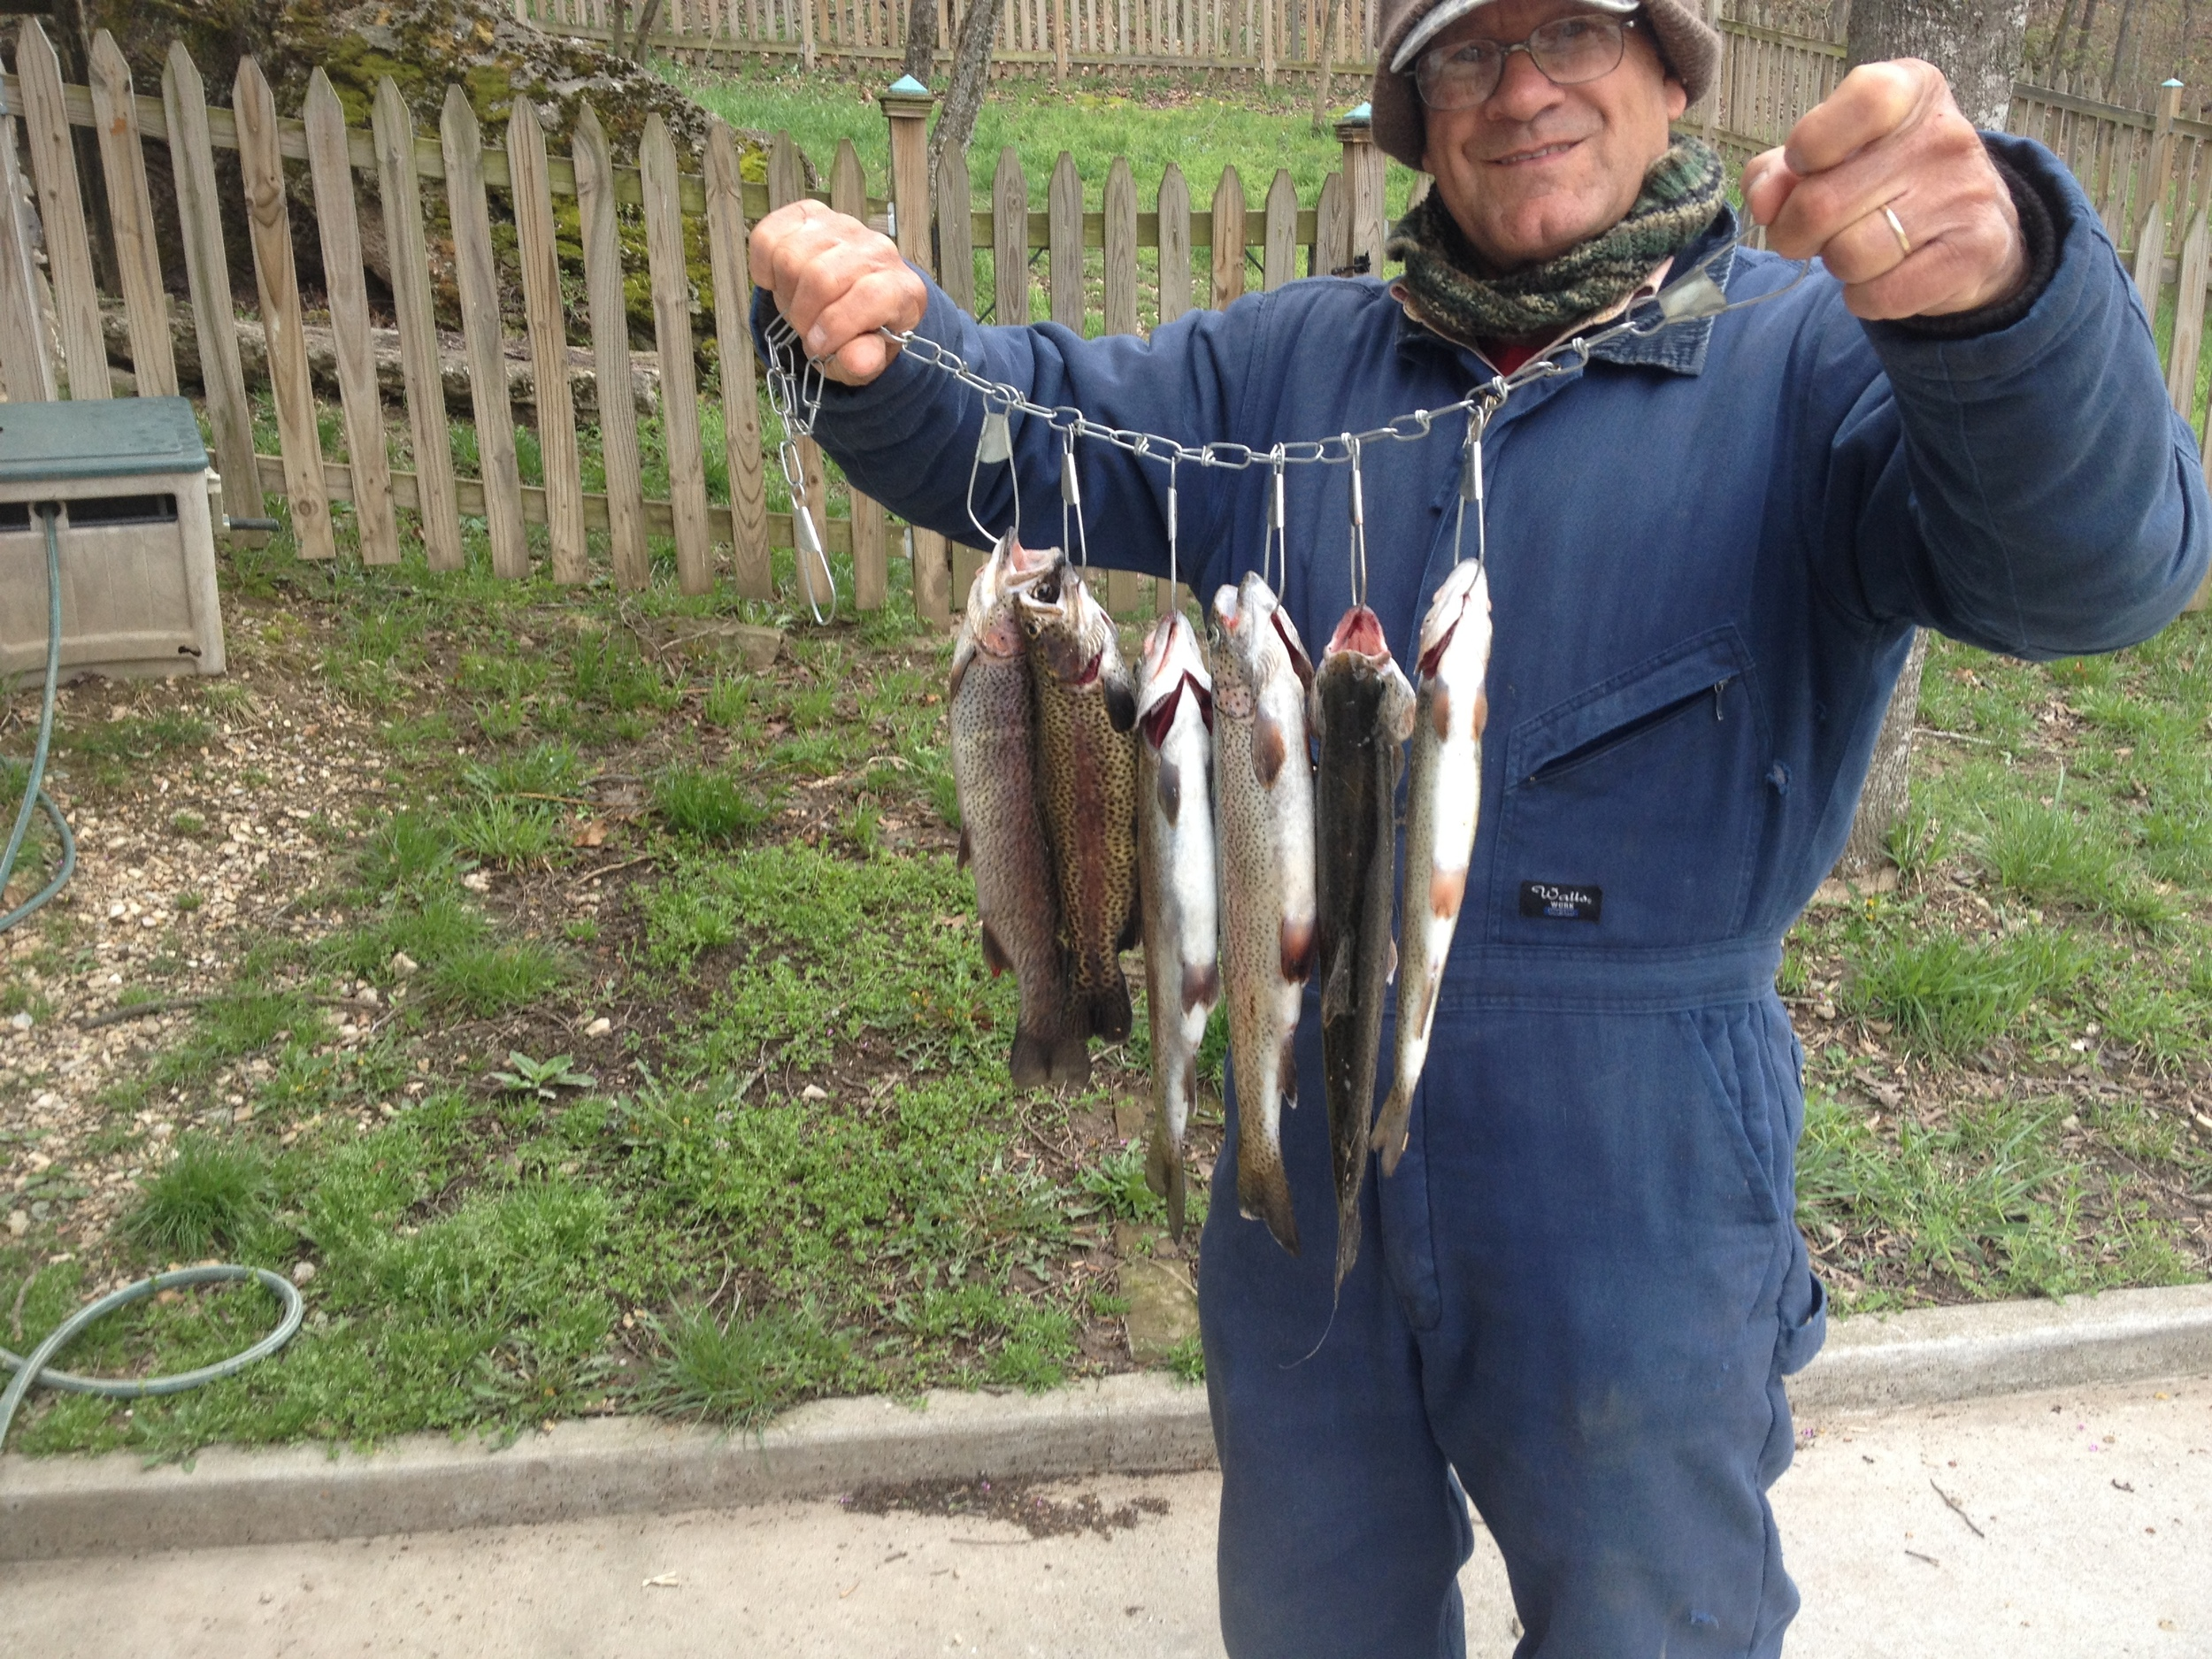 two fishermen + one hour = six healthy-looking trout